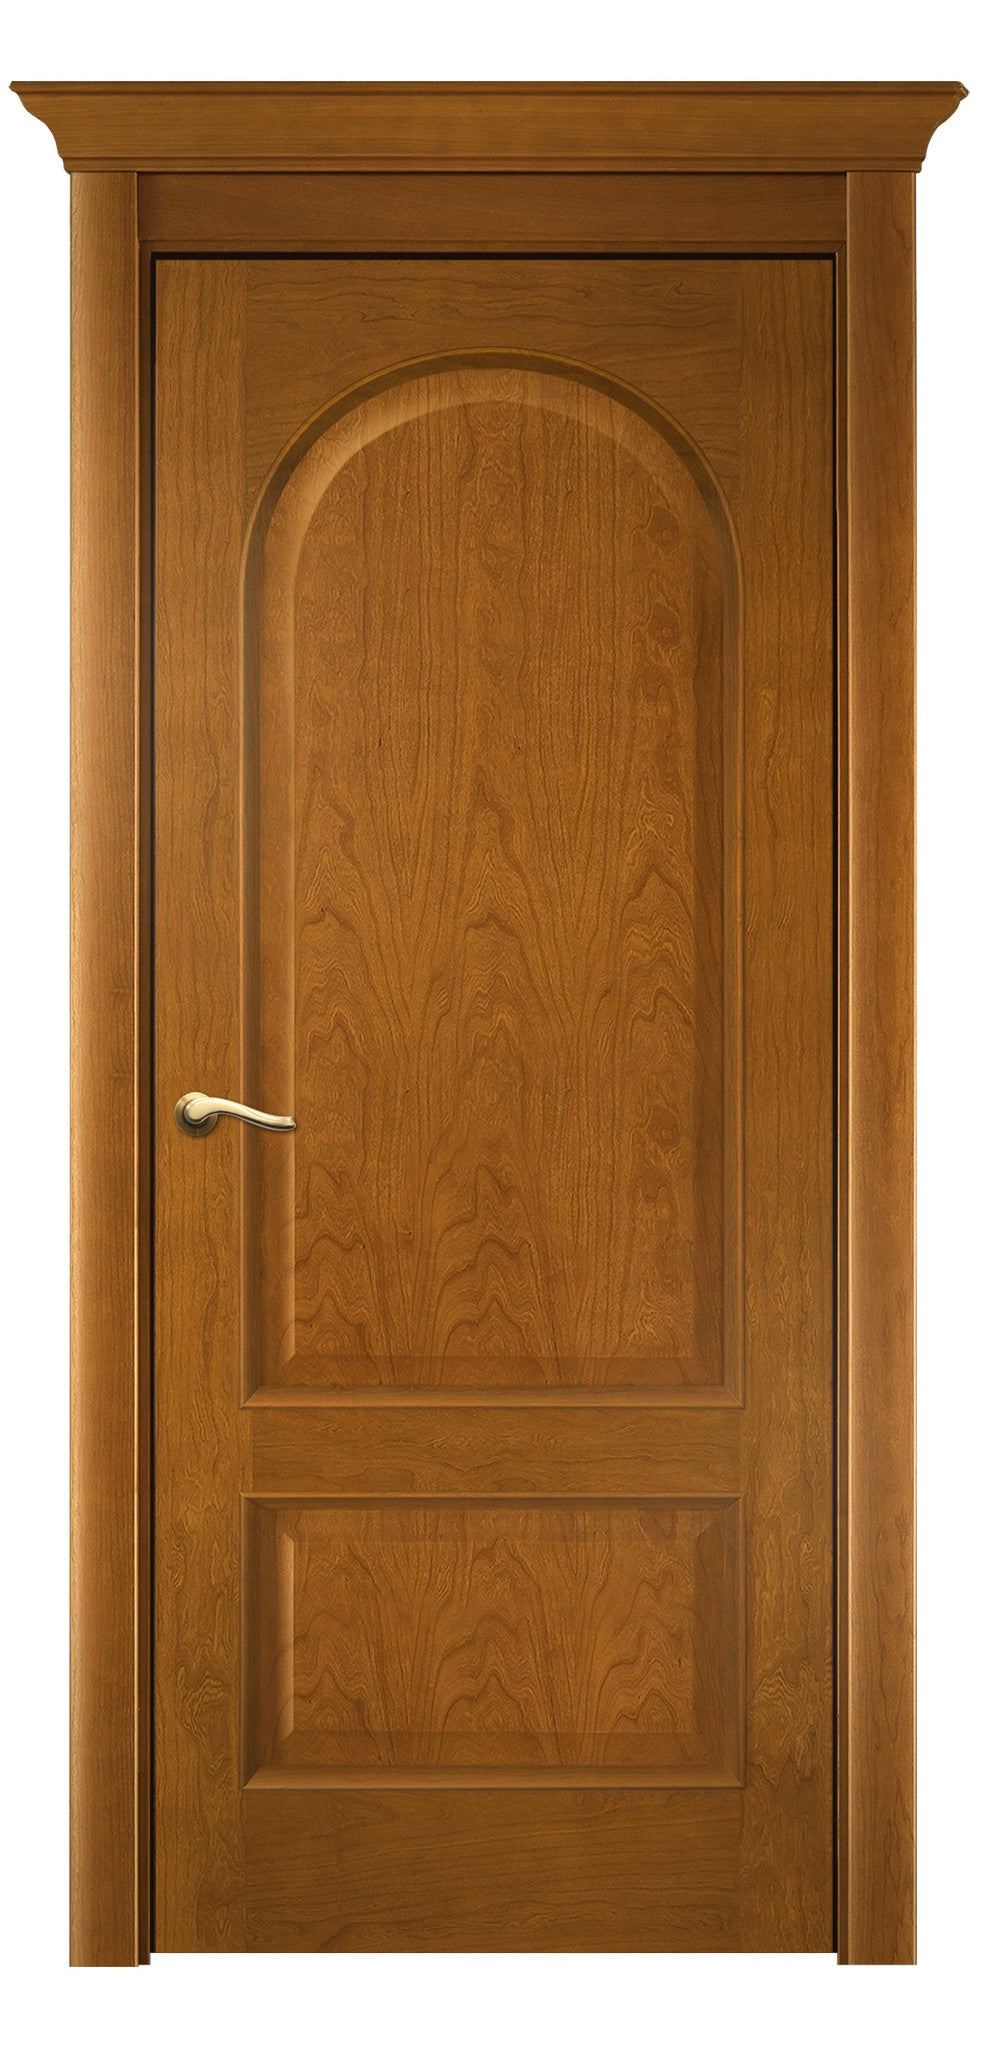 Sarto Decanto NS 5201 Interior Doors Cherry